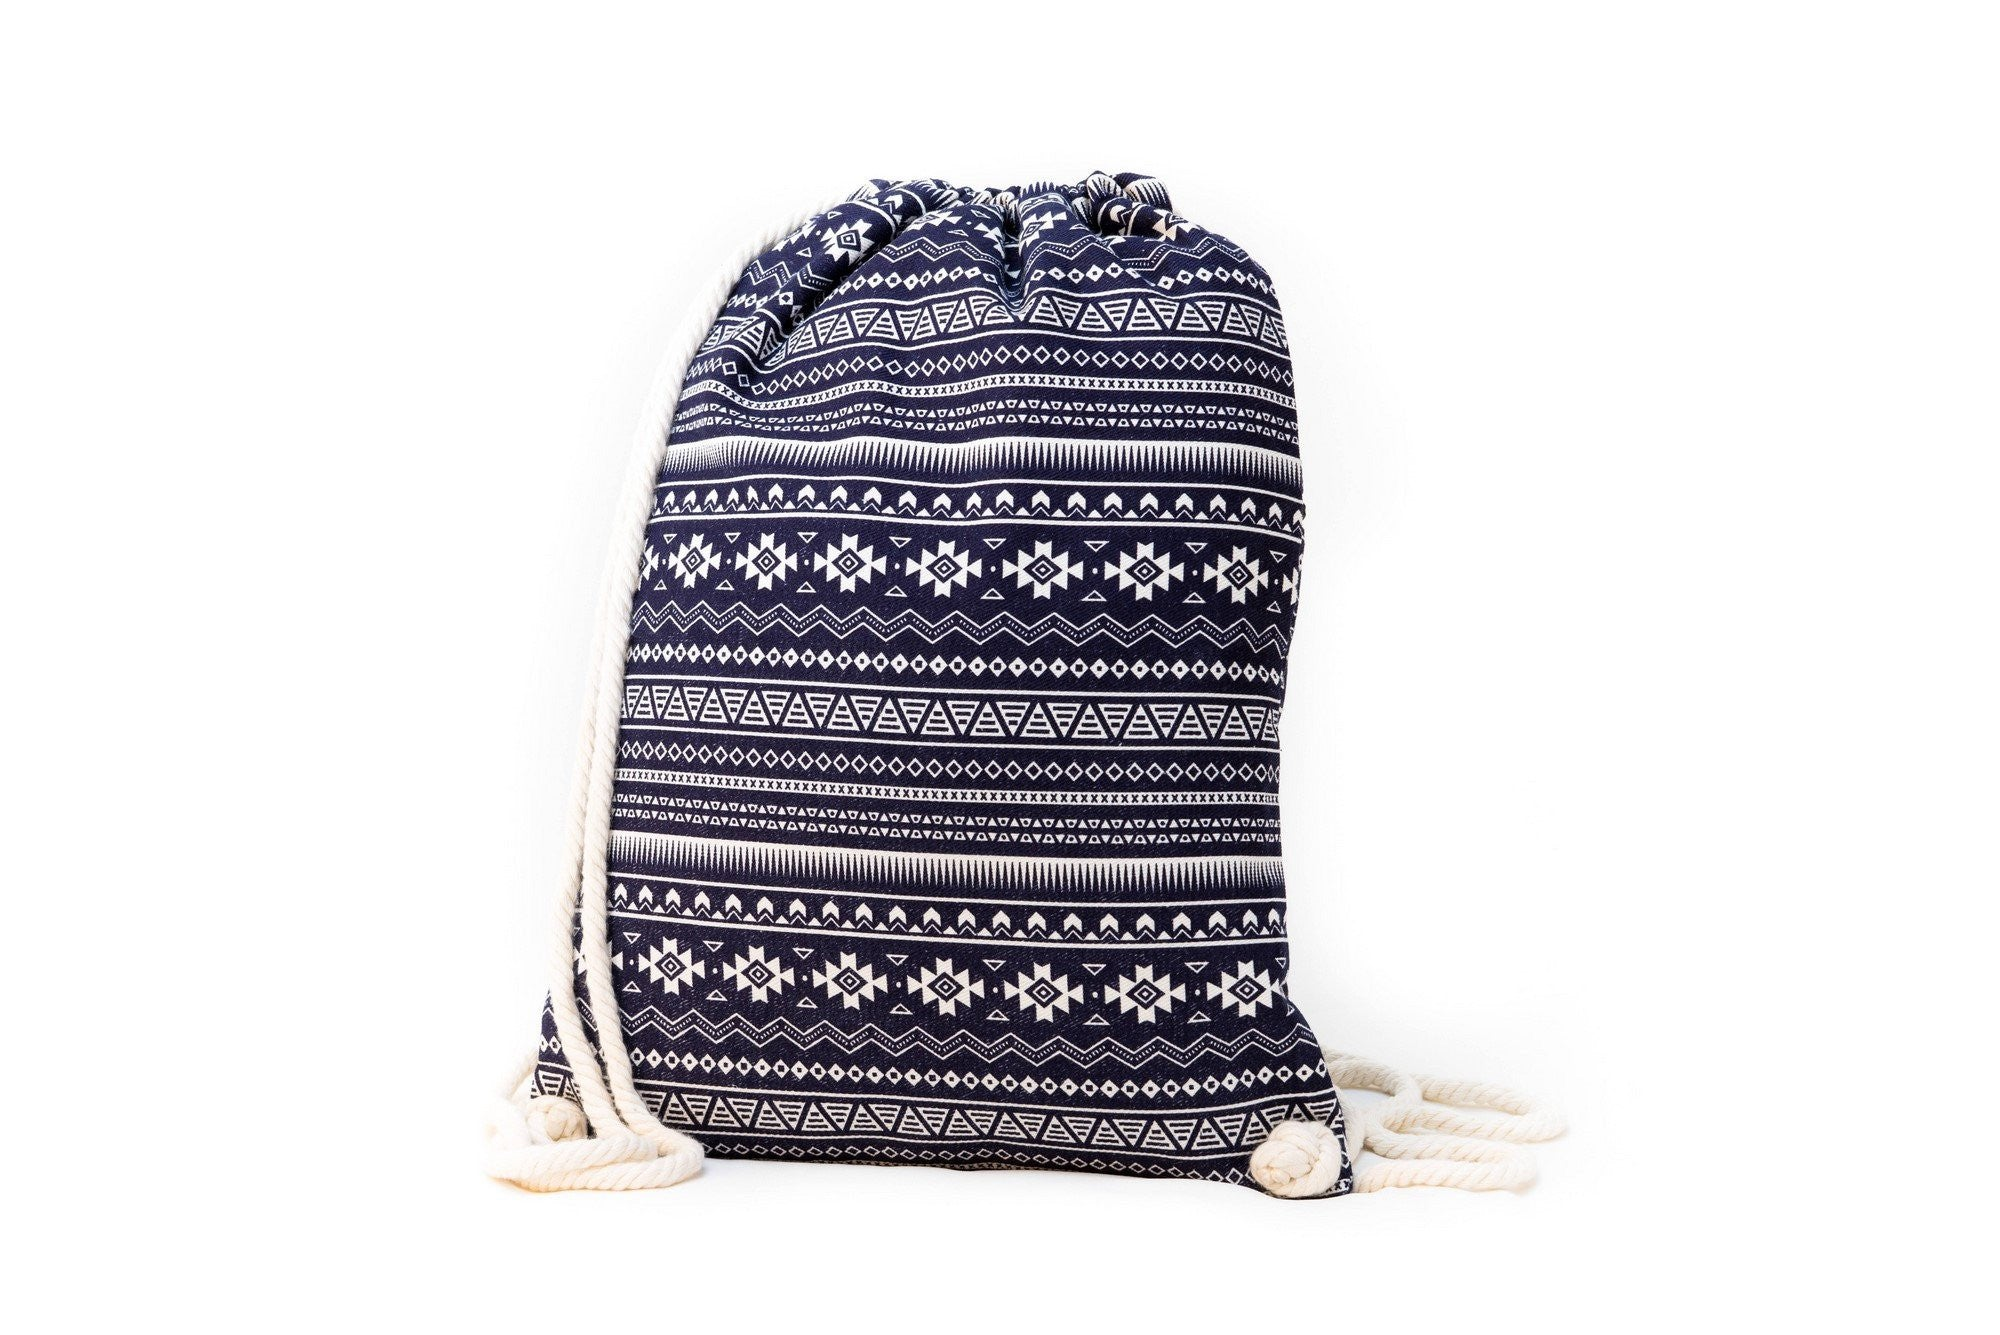 Drawstring Backpack - Drawstring Backpack - Canvas Cinch Daypack Sackpack By Lemur Bags (Tribal)